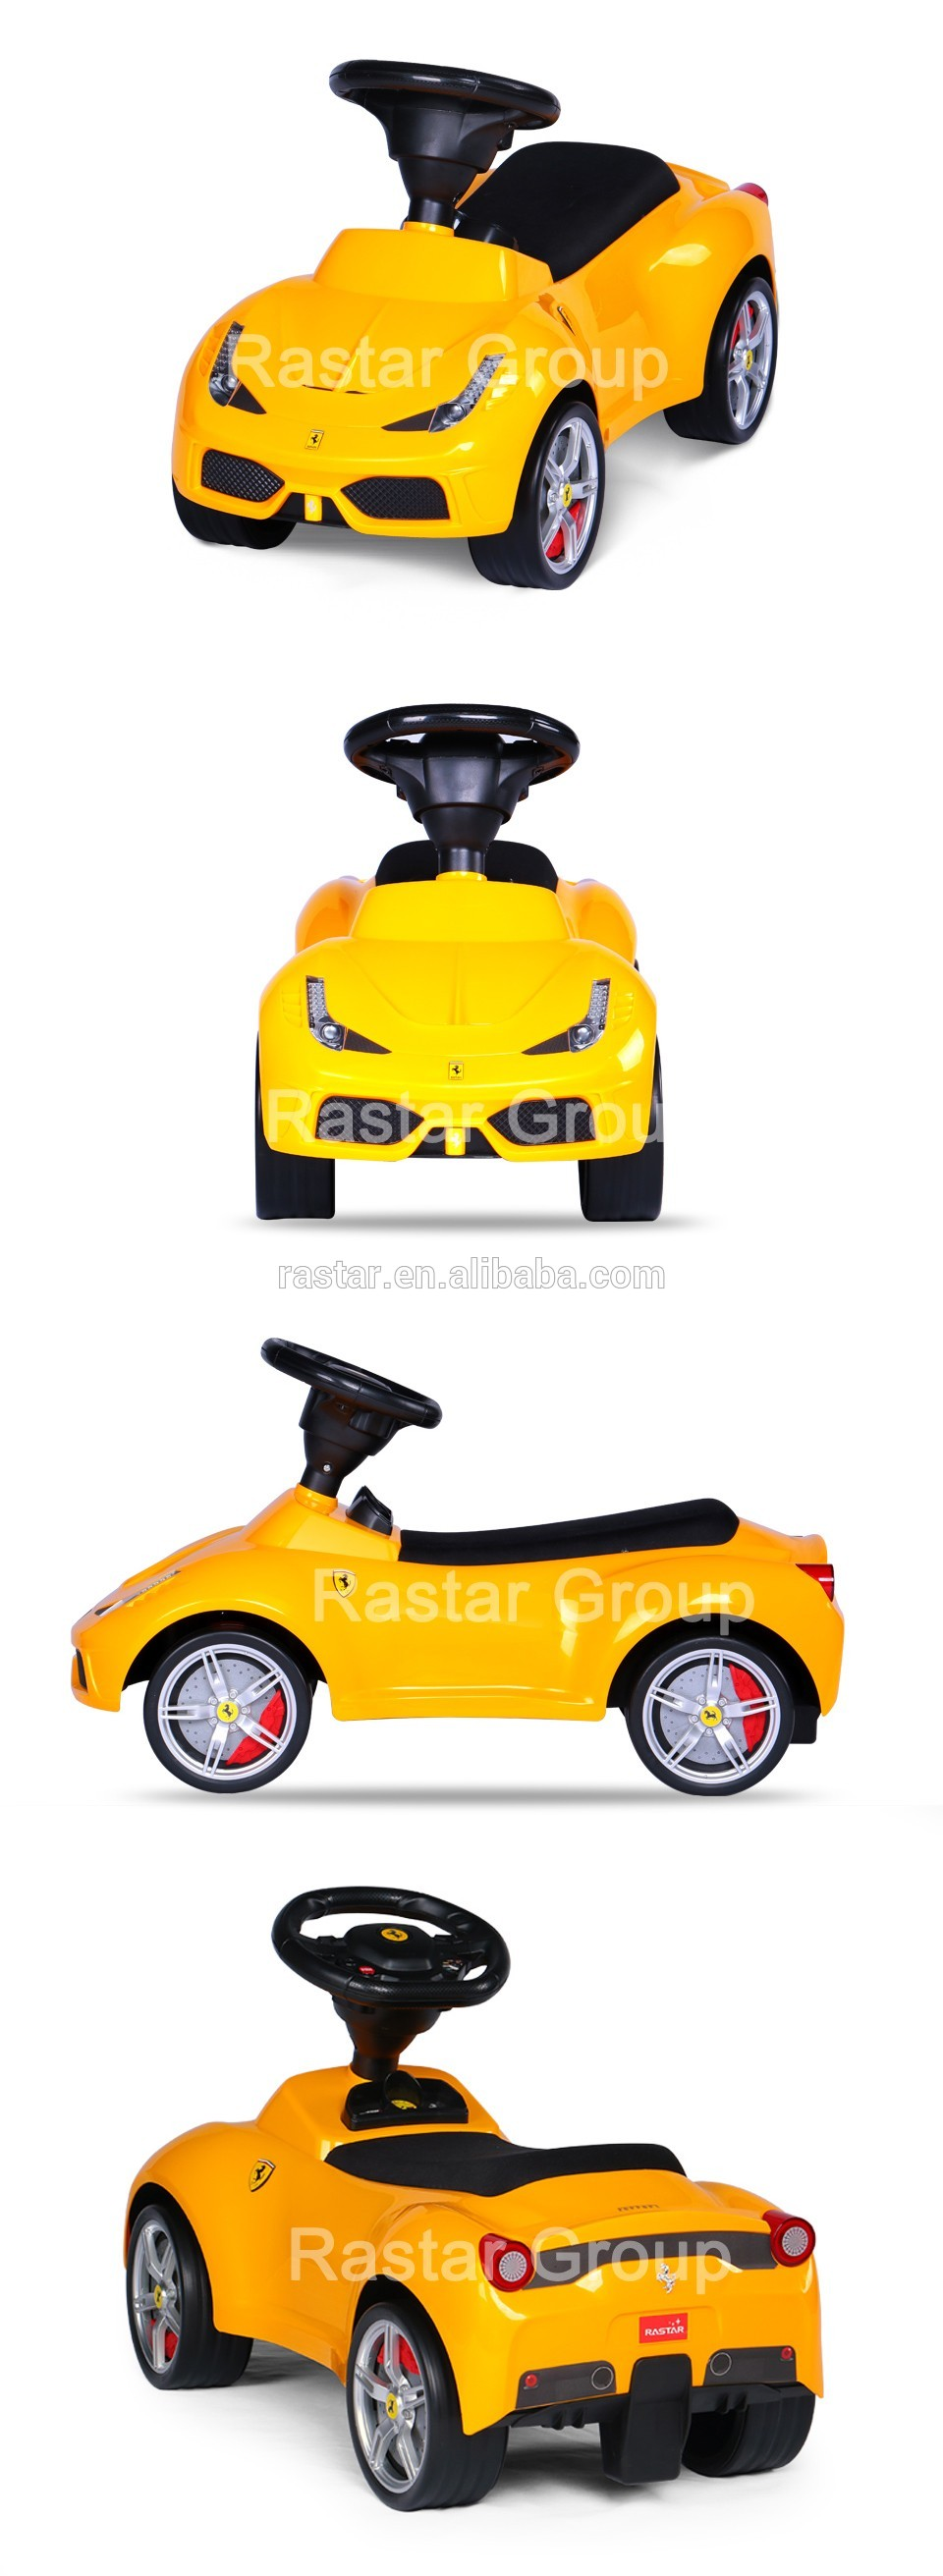 Ferrari clipart kid car Ride kids China Ferrari car